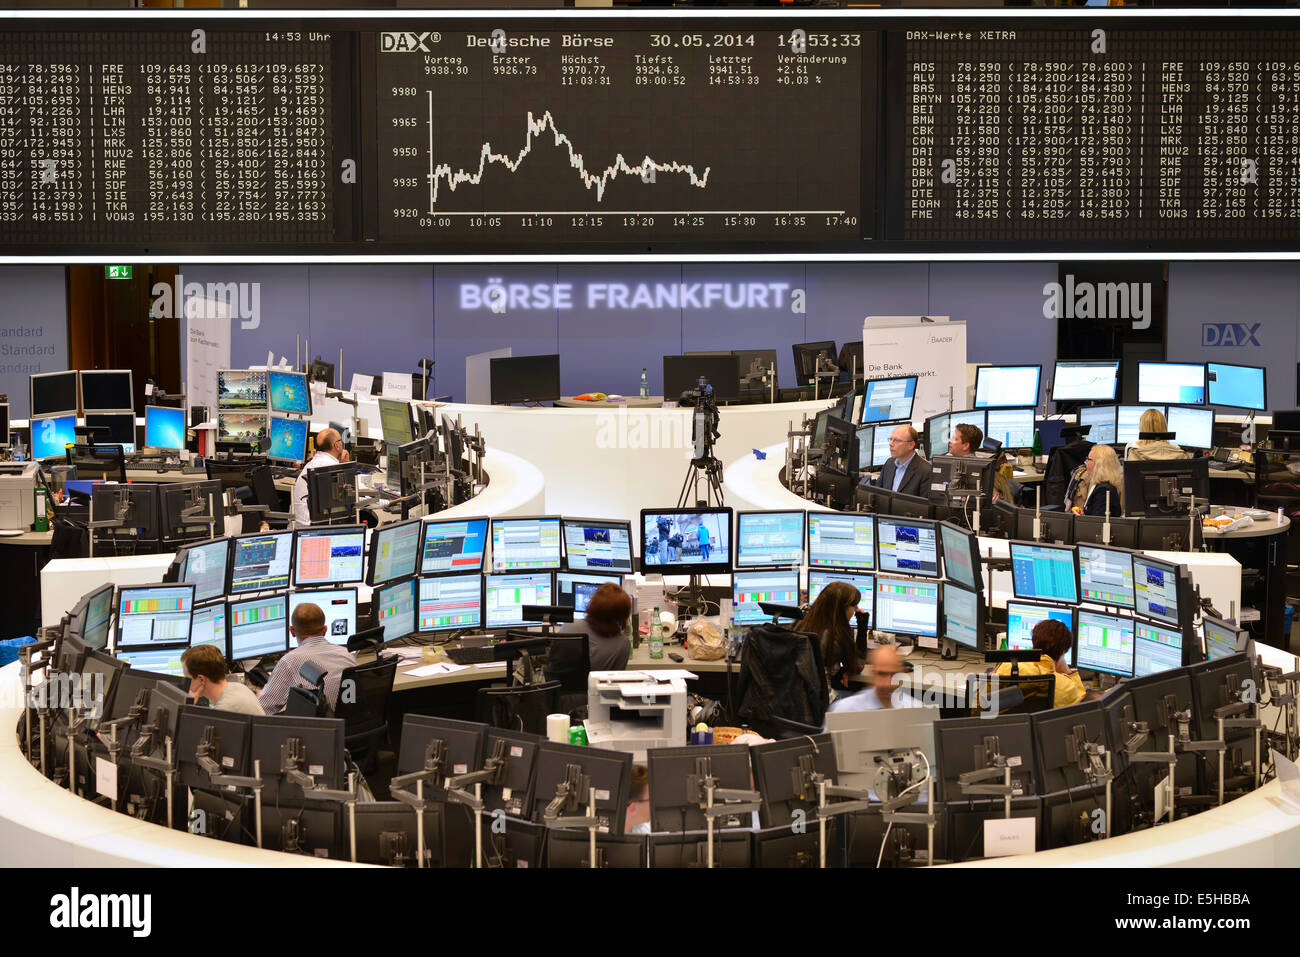 HD free stock footage - stock broker, stock exchange ...